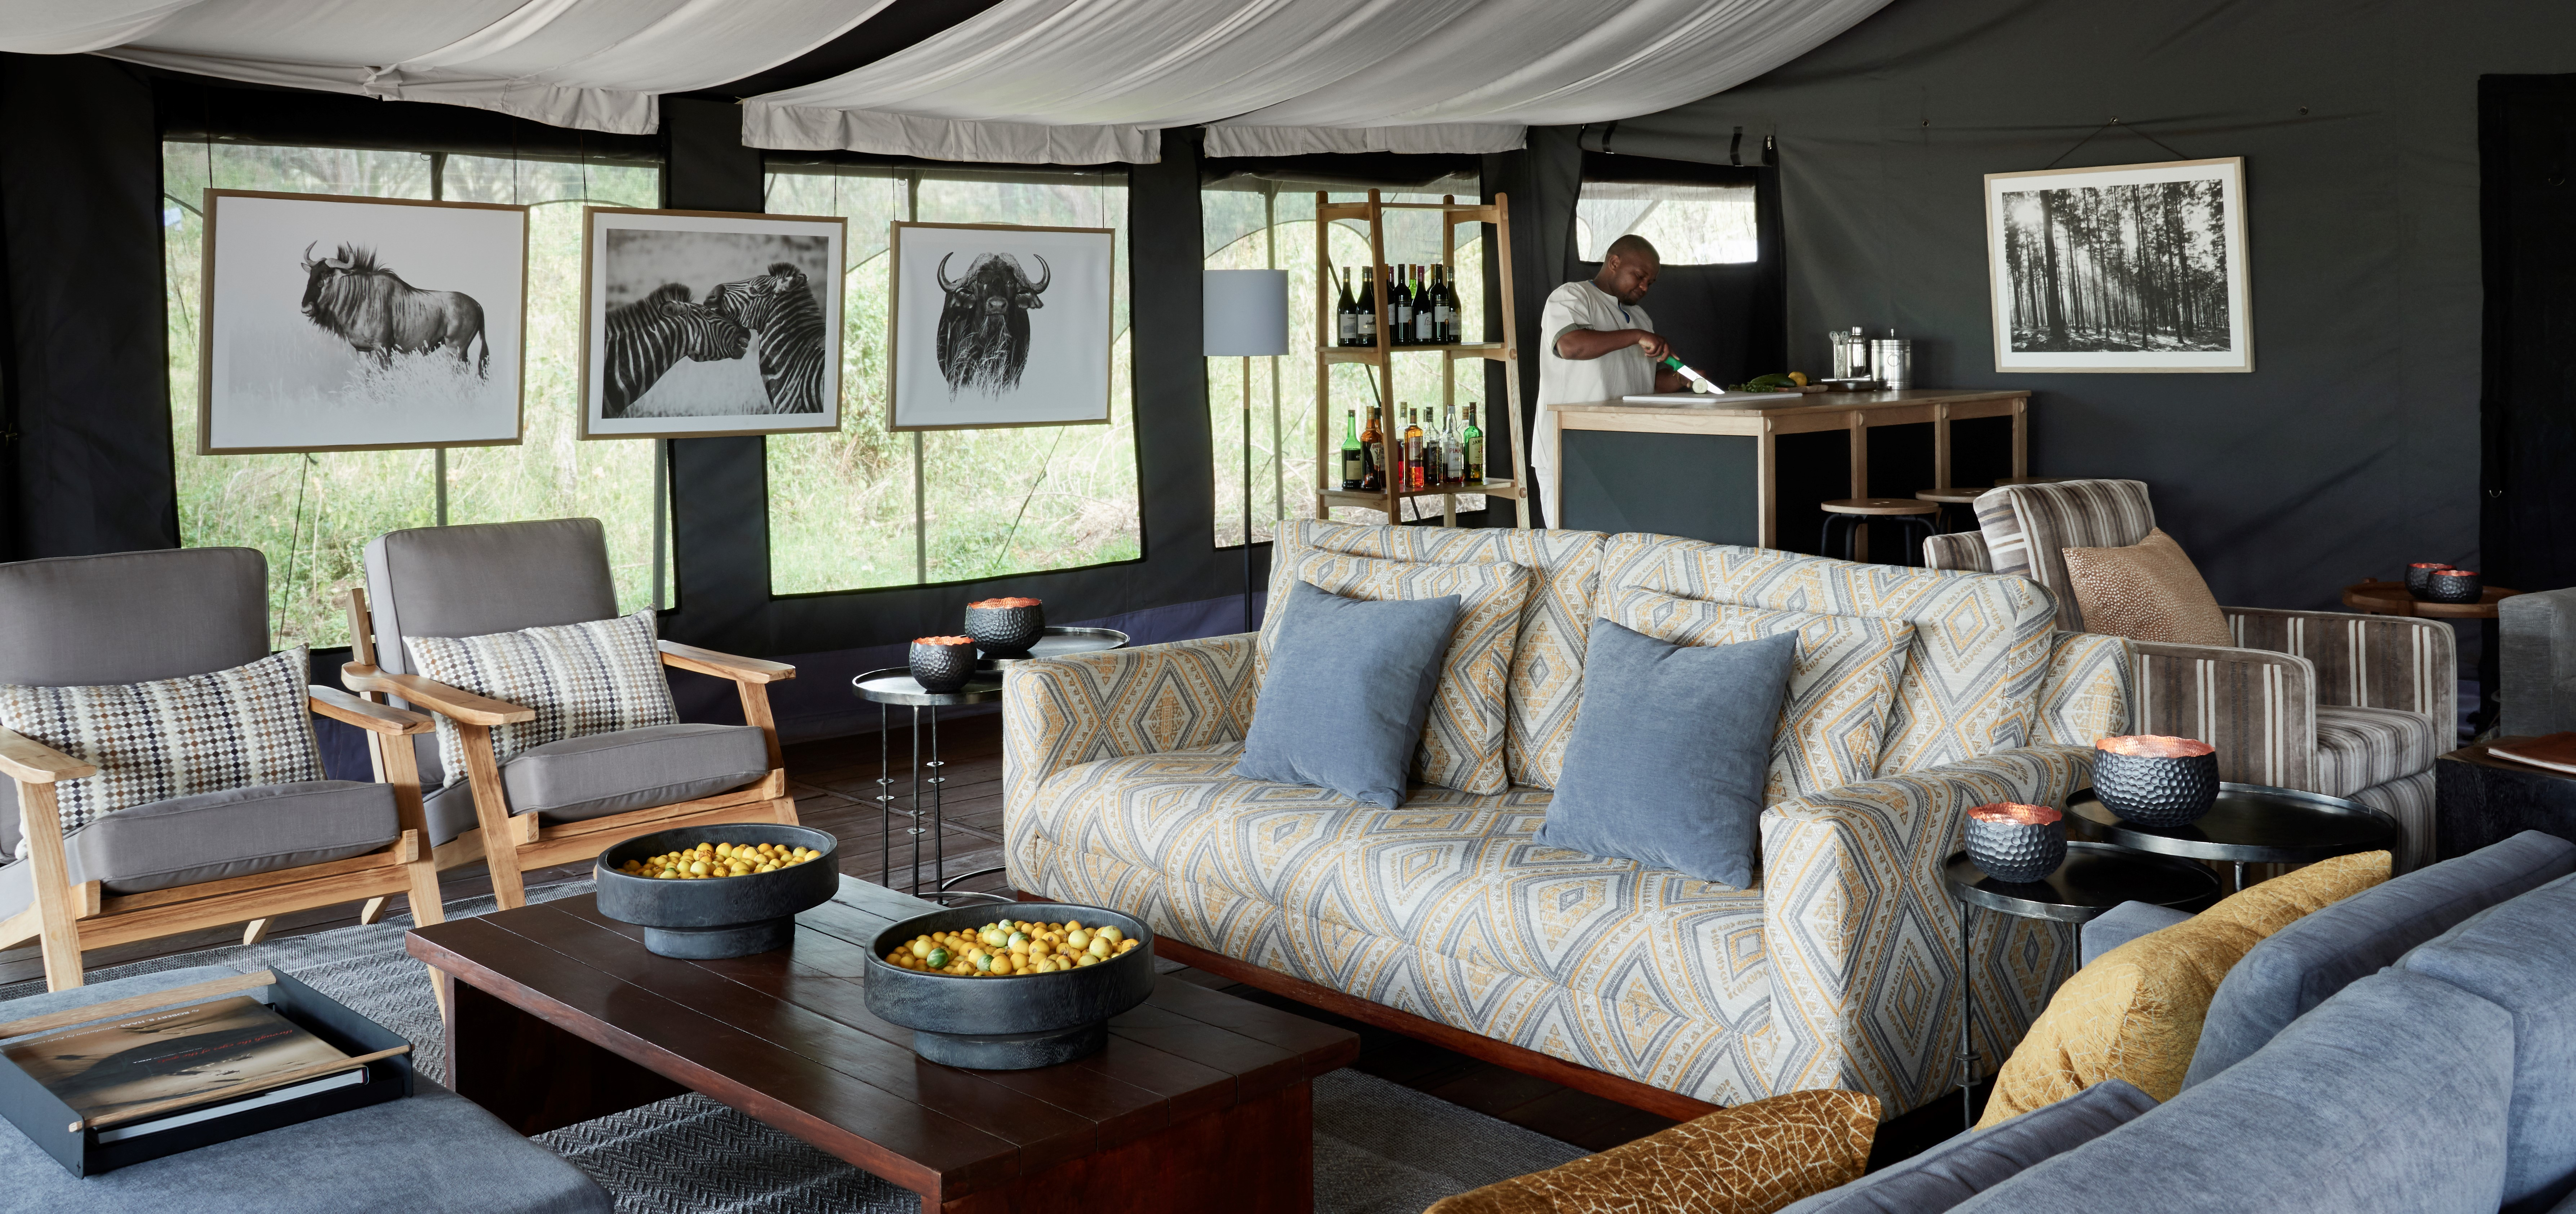 sanctuary-ngorongoro-crater-lounge